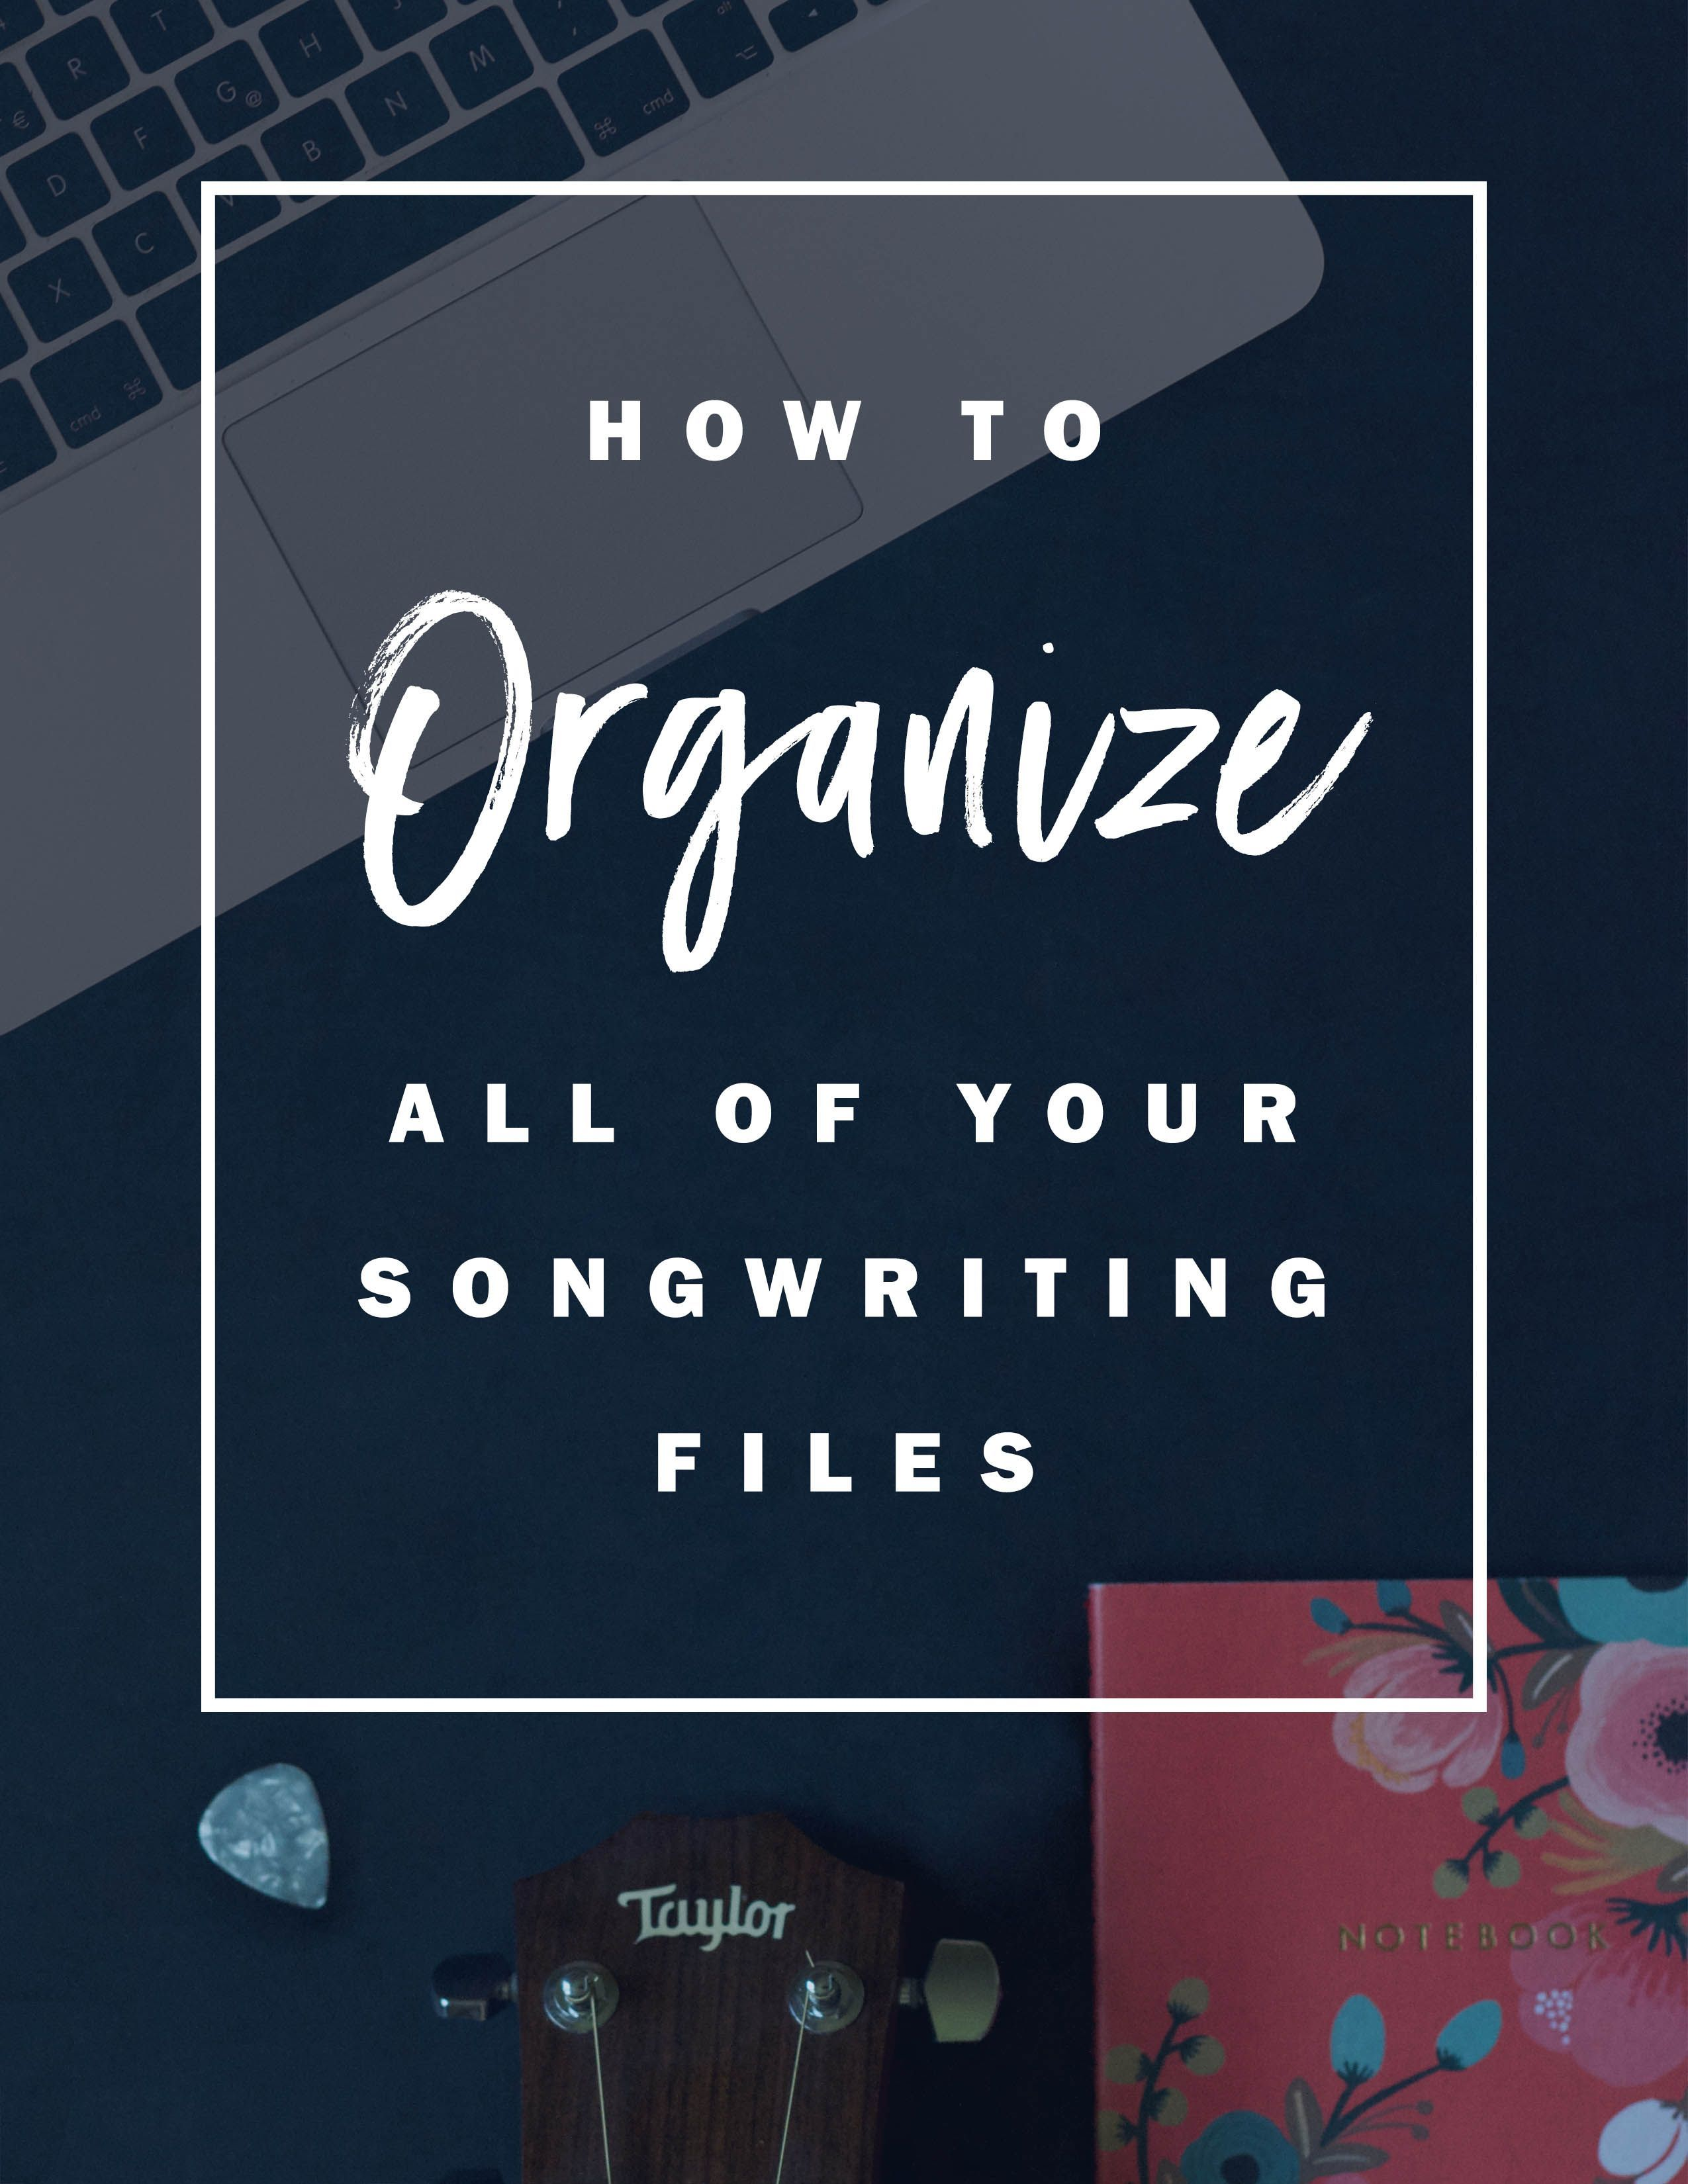 What Is A Hook Book And How To Start One Songfancy Songwriting Writing Lyrics Songwriting Inspiration